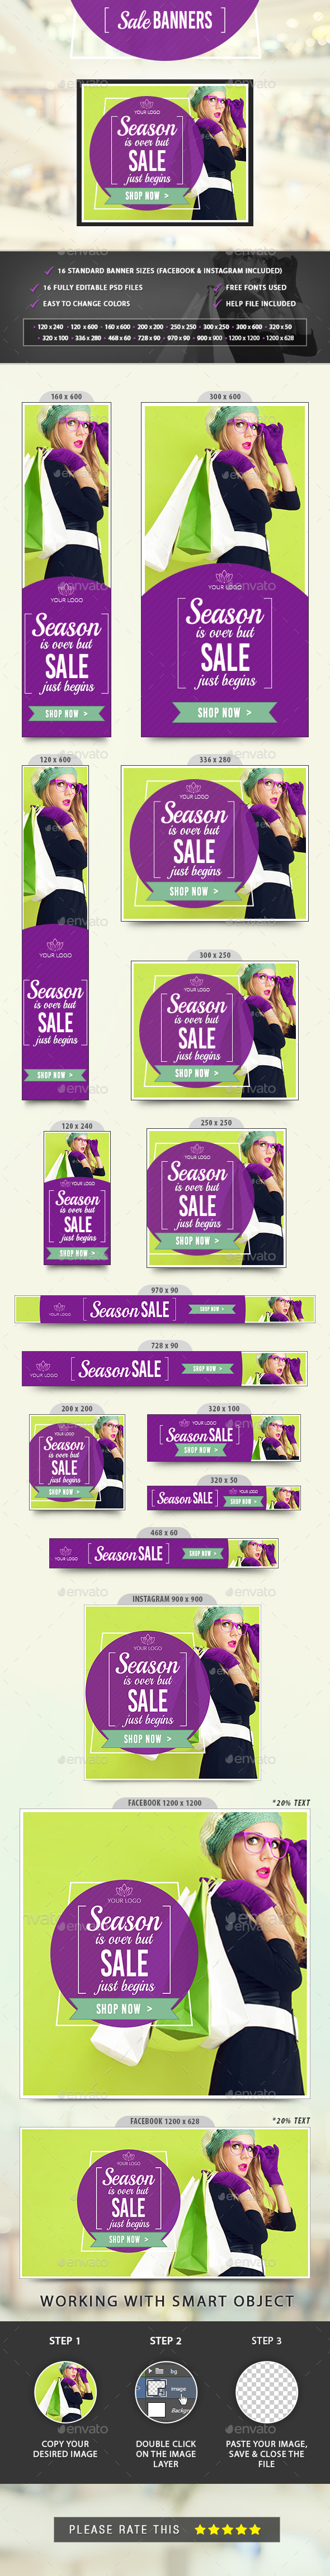 Sale Banners - Banners & Ads Web Elements